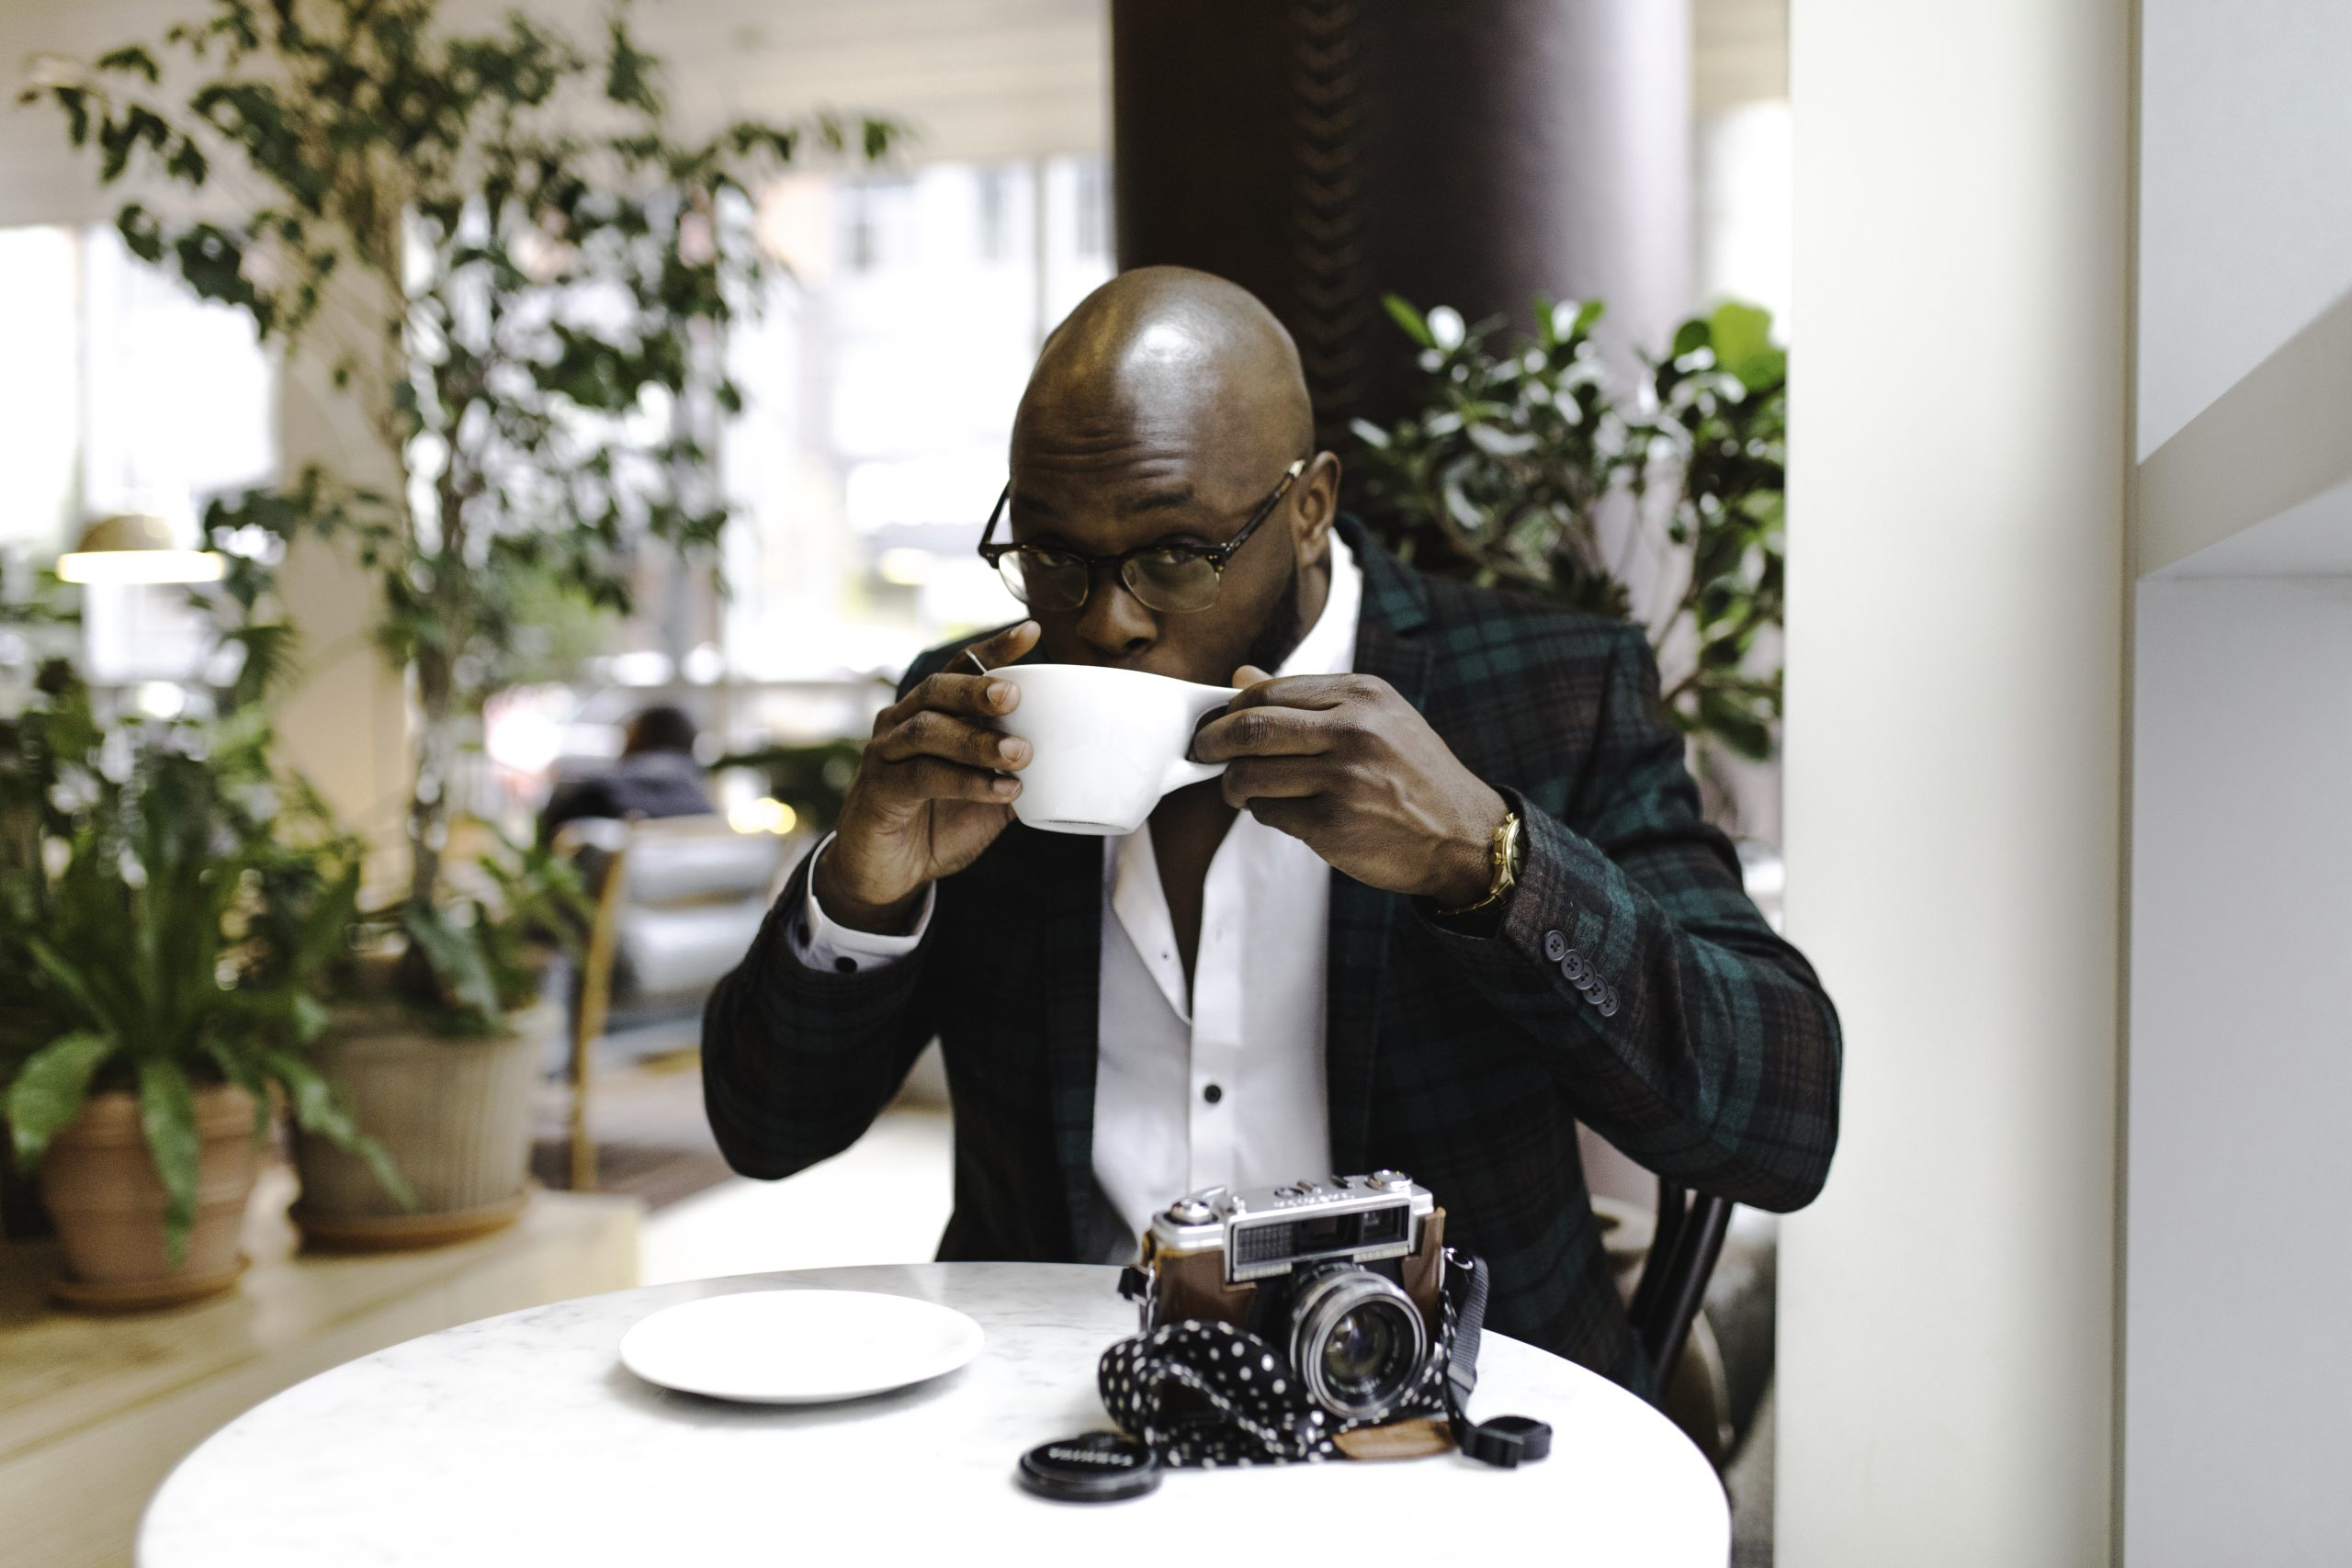 Man sitting in front of round table while sipping from white ceramic mug